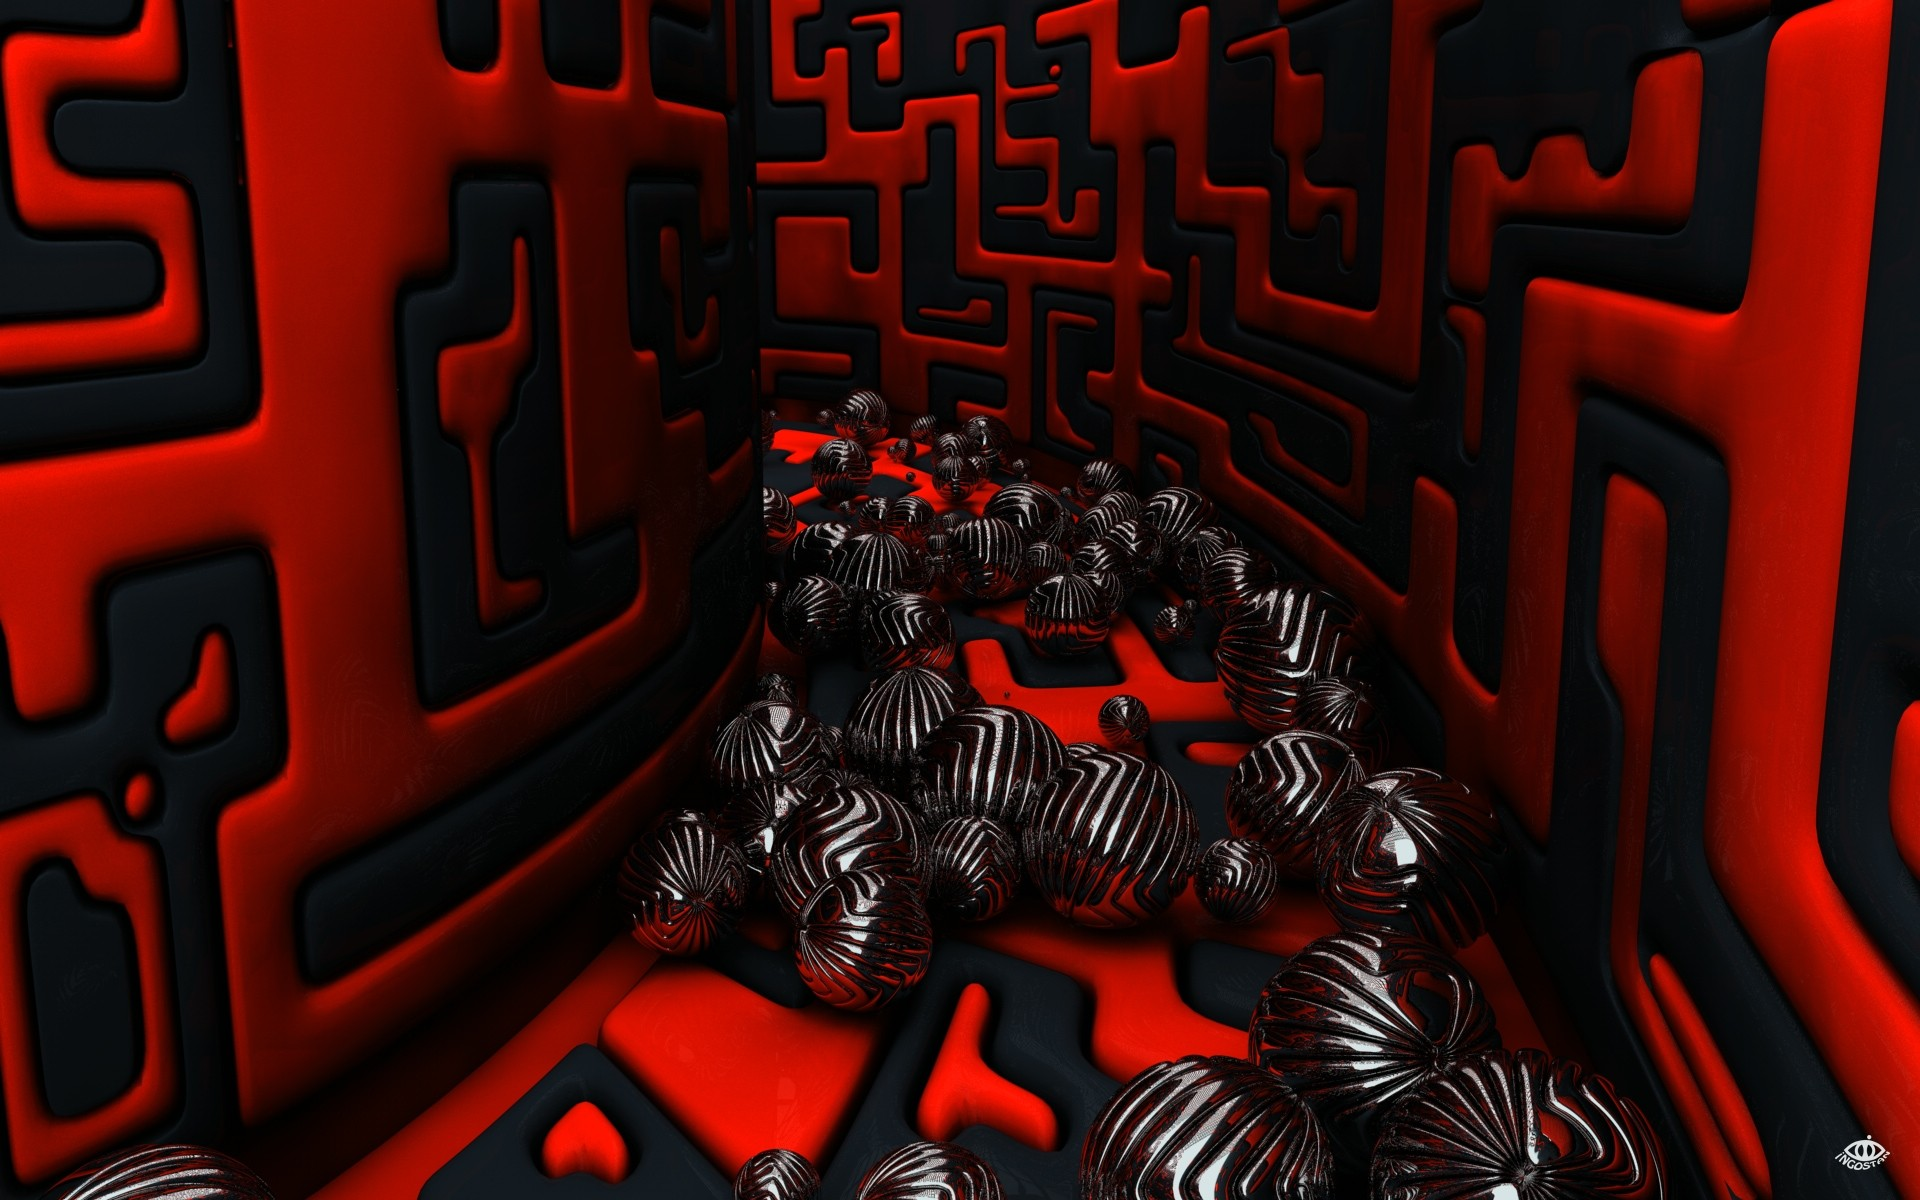 … Black and Red Abstract Wallpaper 350 | Amazing Wallpaperz